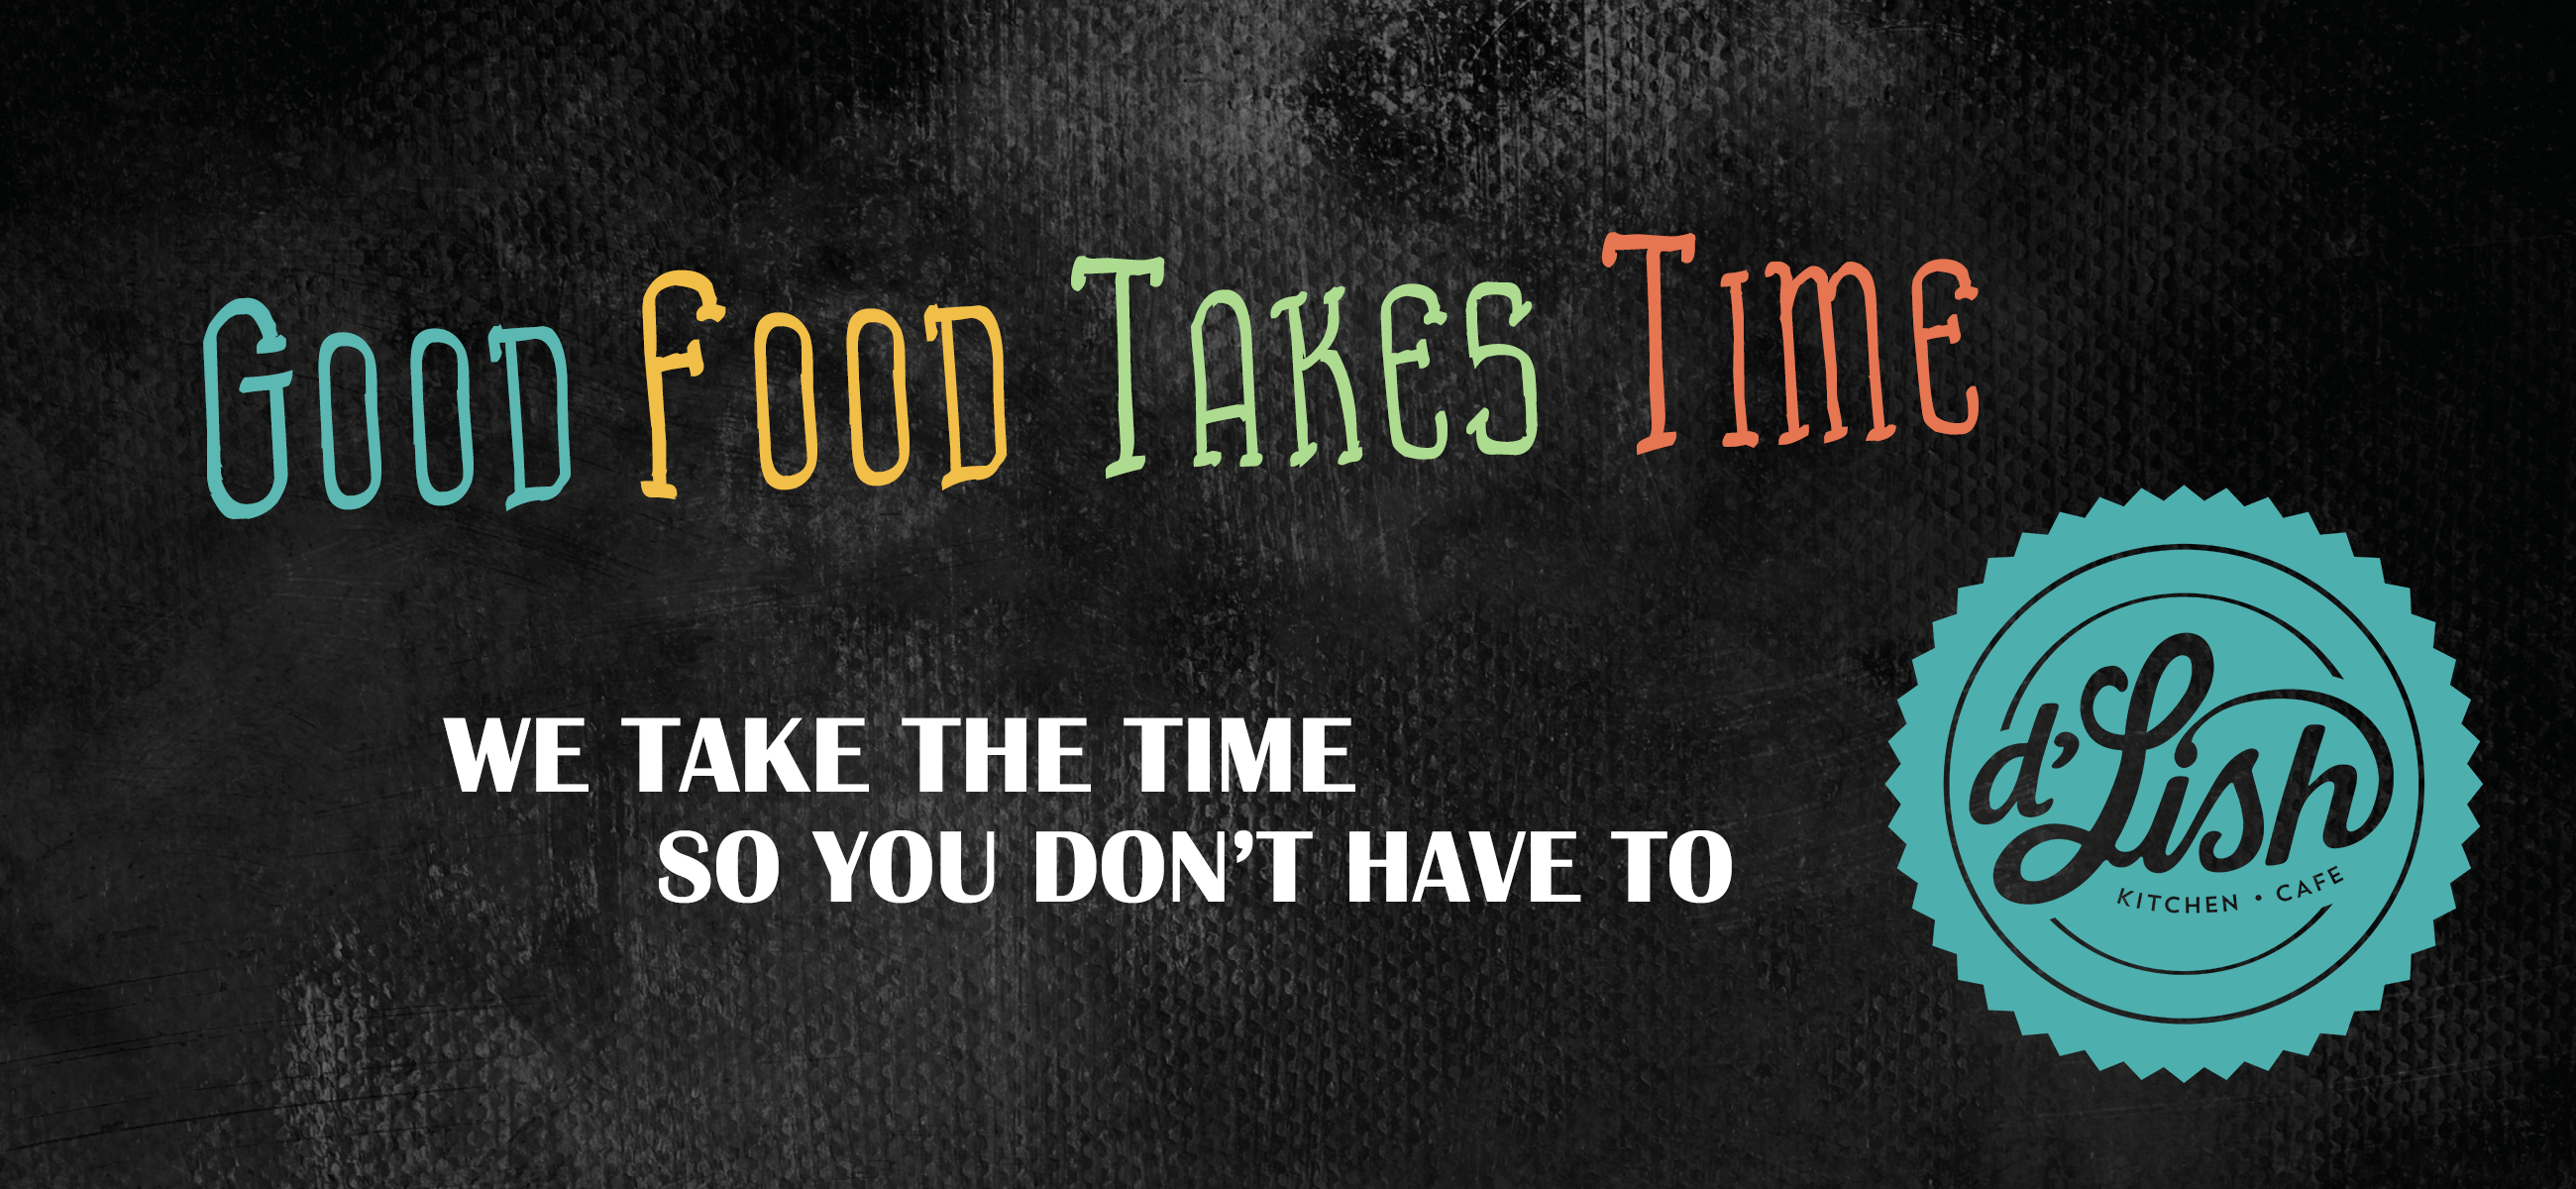 Good Food Takes Time